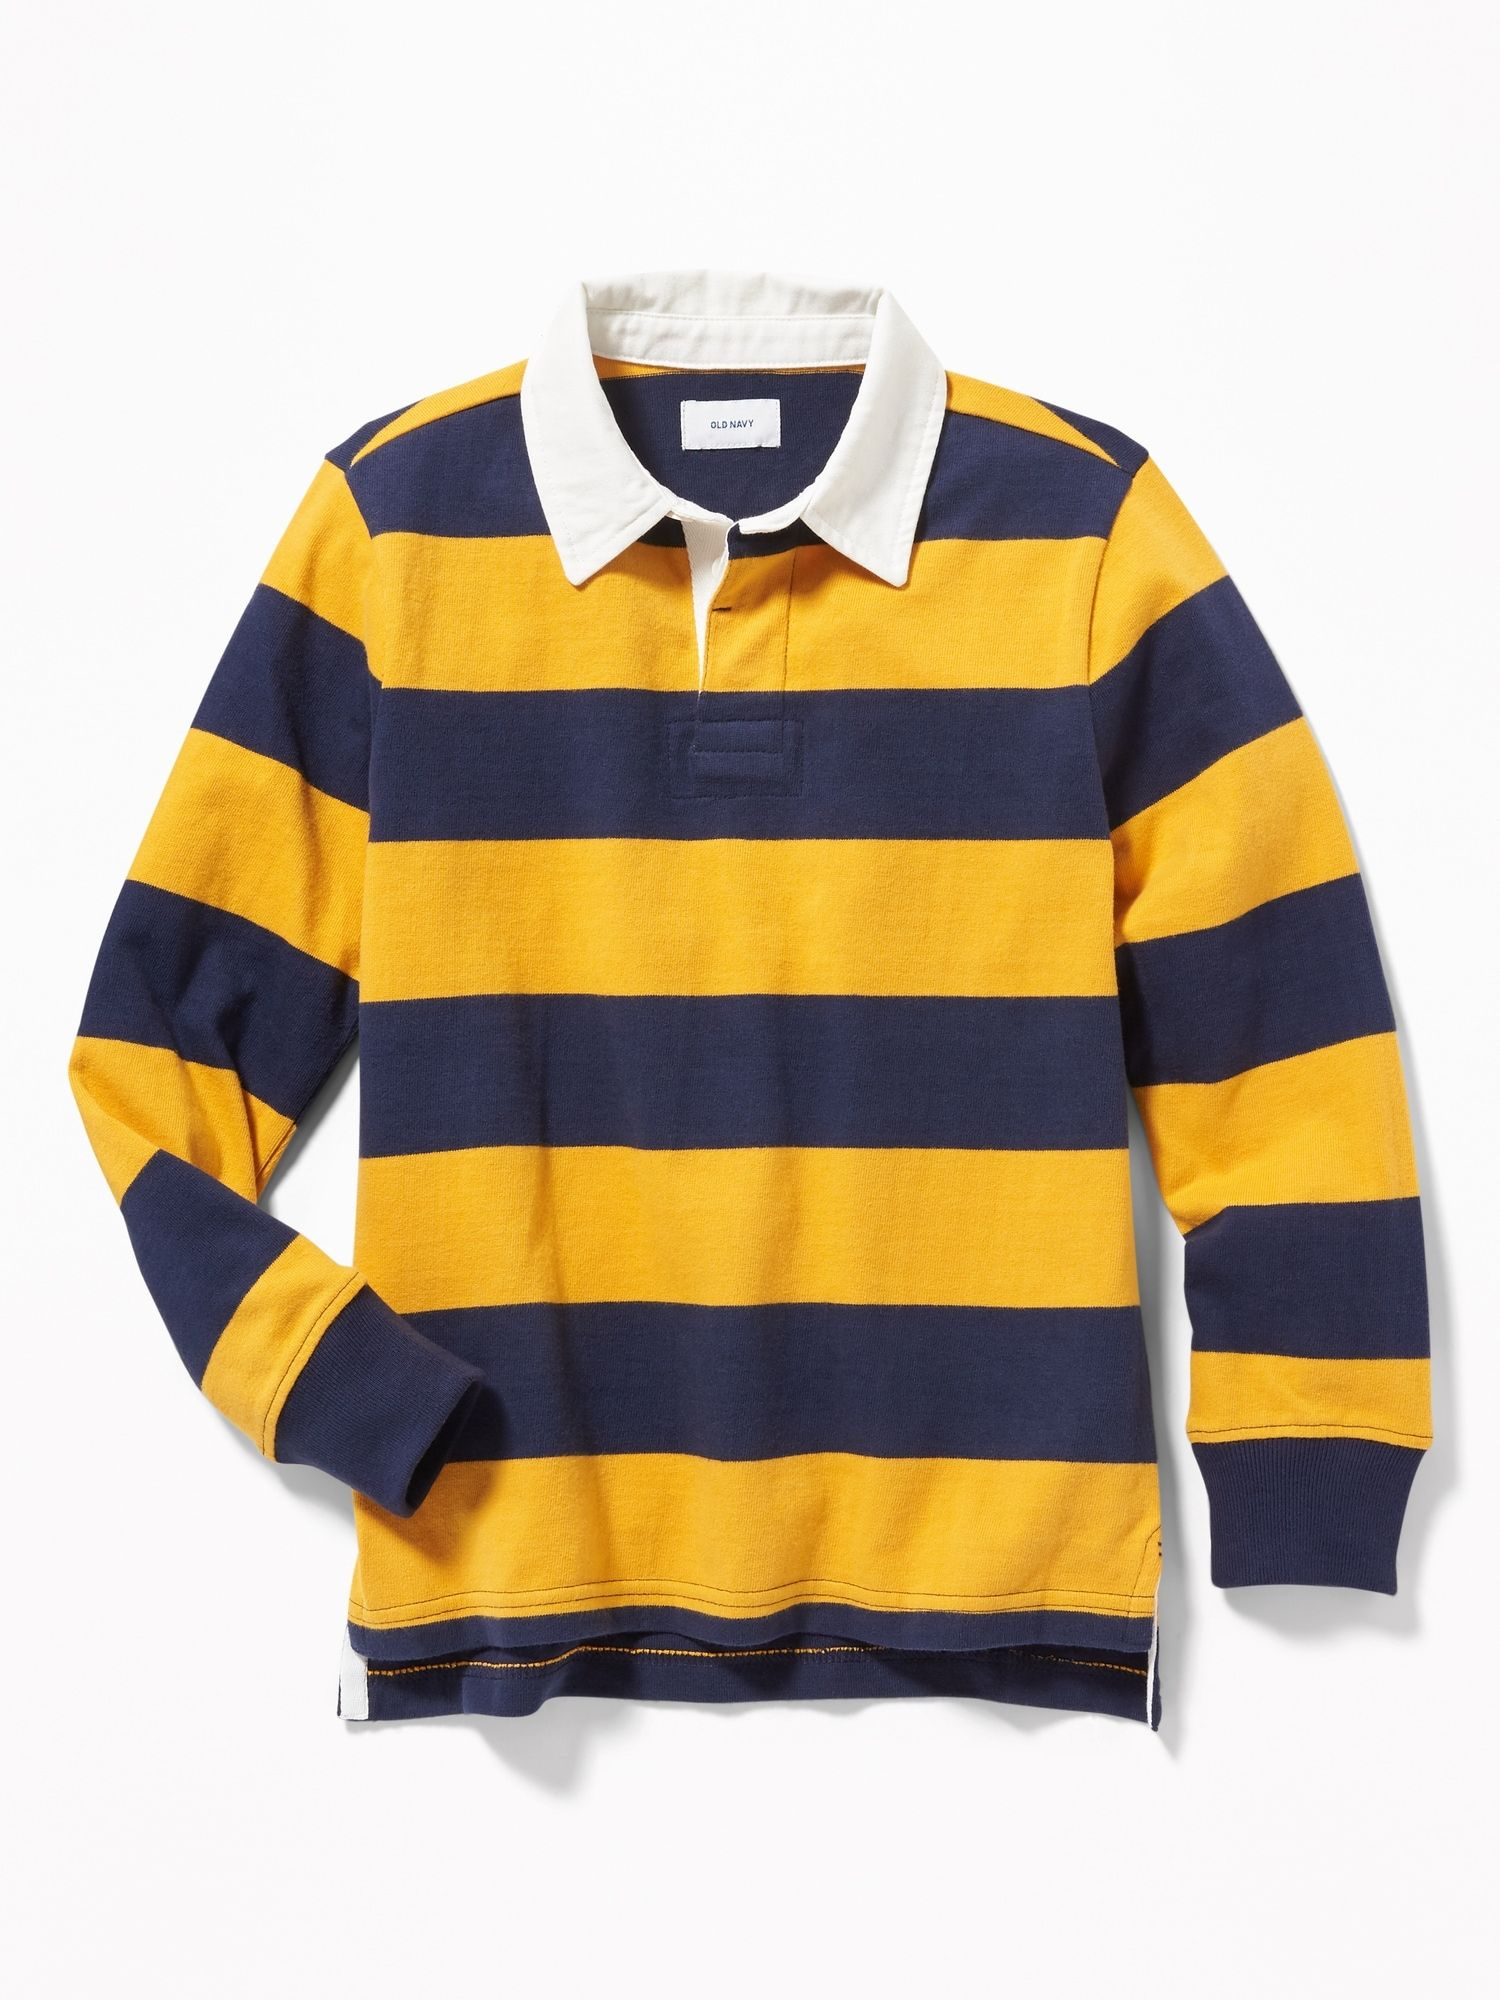 Striped Jersey Rugby For Boys Old Navy Mens Rugby Shirts Ralph Lauren Polo Shirts Rugby Shirt